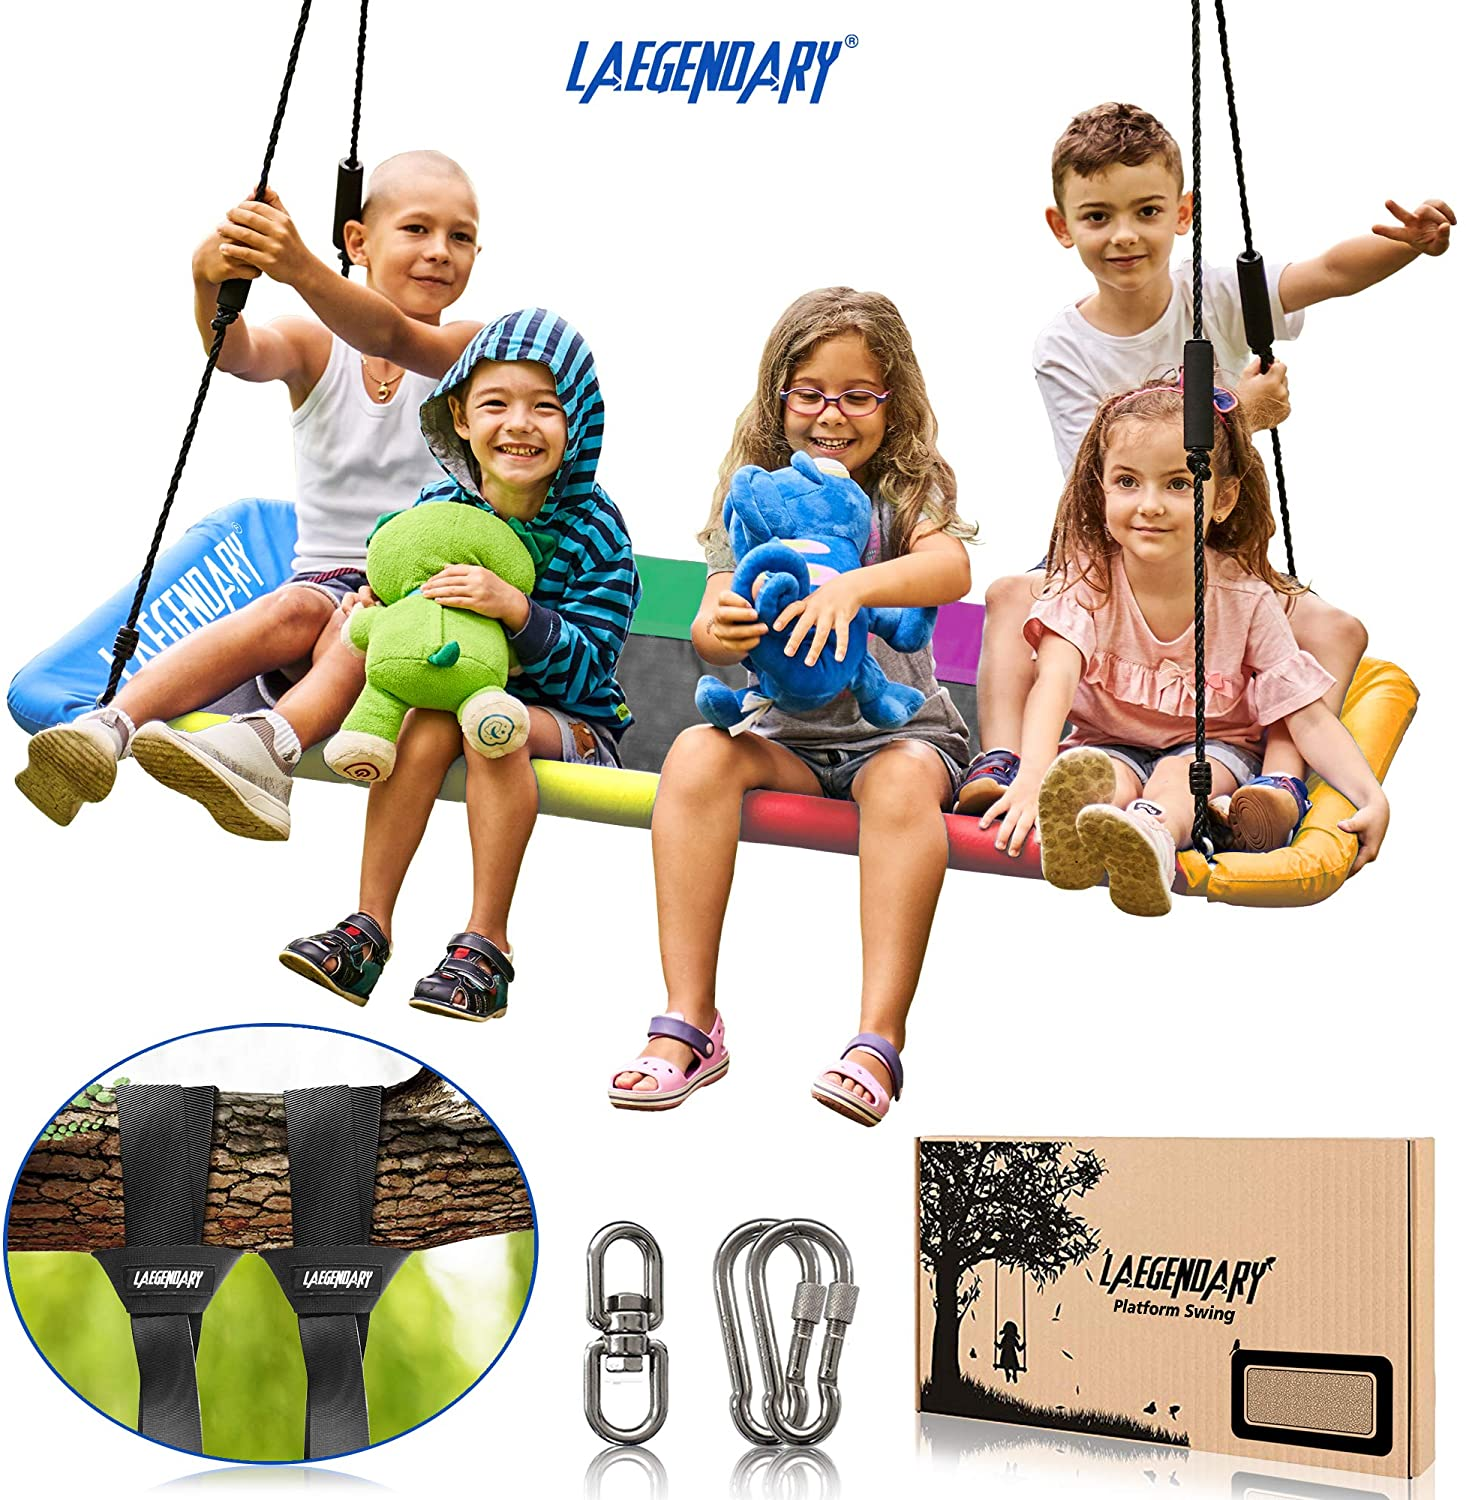 60 Inch Platform Tree Swing for Kids and Adults – Giant Fly